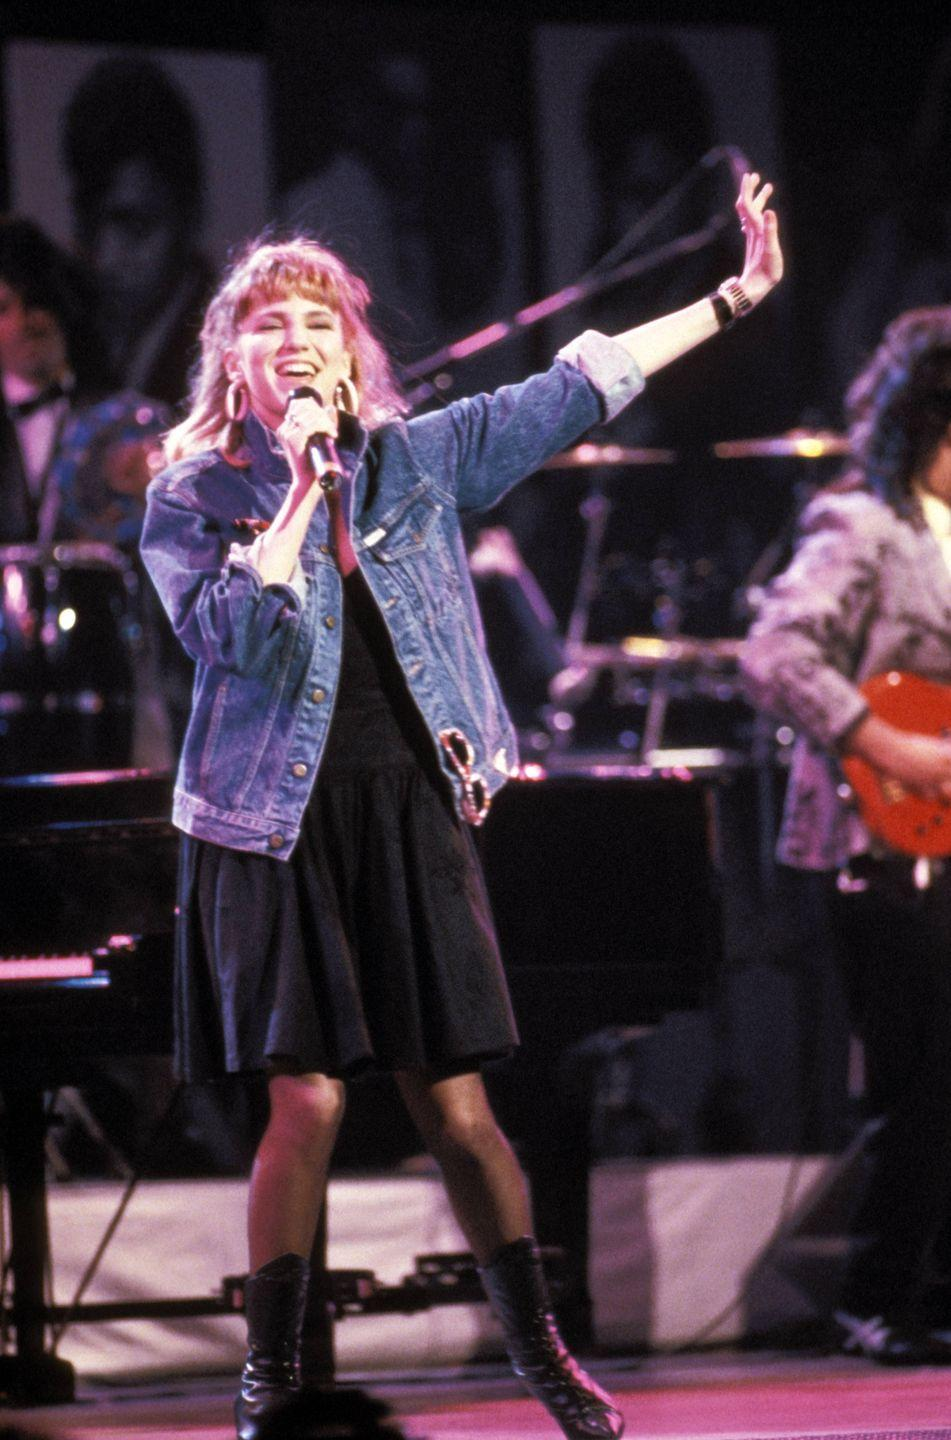 """<p>Gibson spent most of the '80s pumping out hits after the debut of """"Only in My Dreams."""" One of her biggest successes, <em>Electric Youth, </em>spent five weeks at No. 1 on the Top 200 Album chart. The teen pop superstar graced the cover of <em>Tiger Beat </em>and <em>YM. </em>Her trademark style of tight jeans and vests over T-shirts became part of quintessential '80s fashion.<br></p>"""